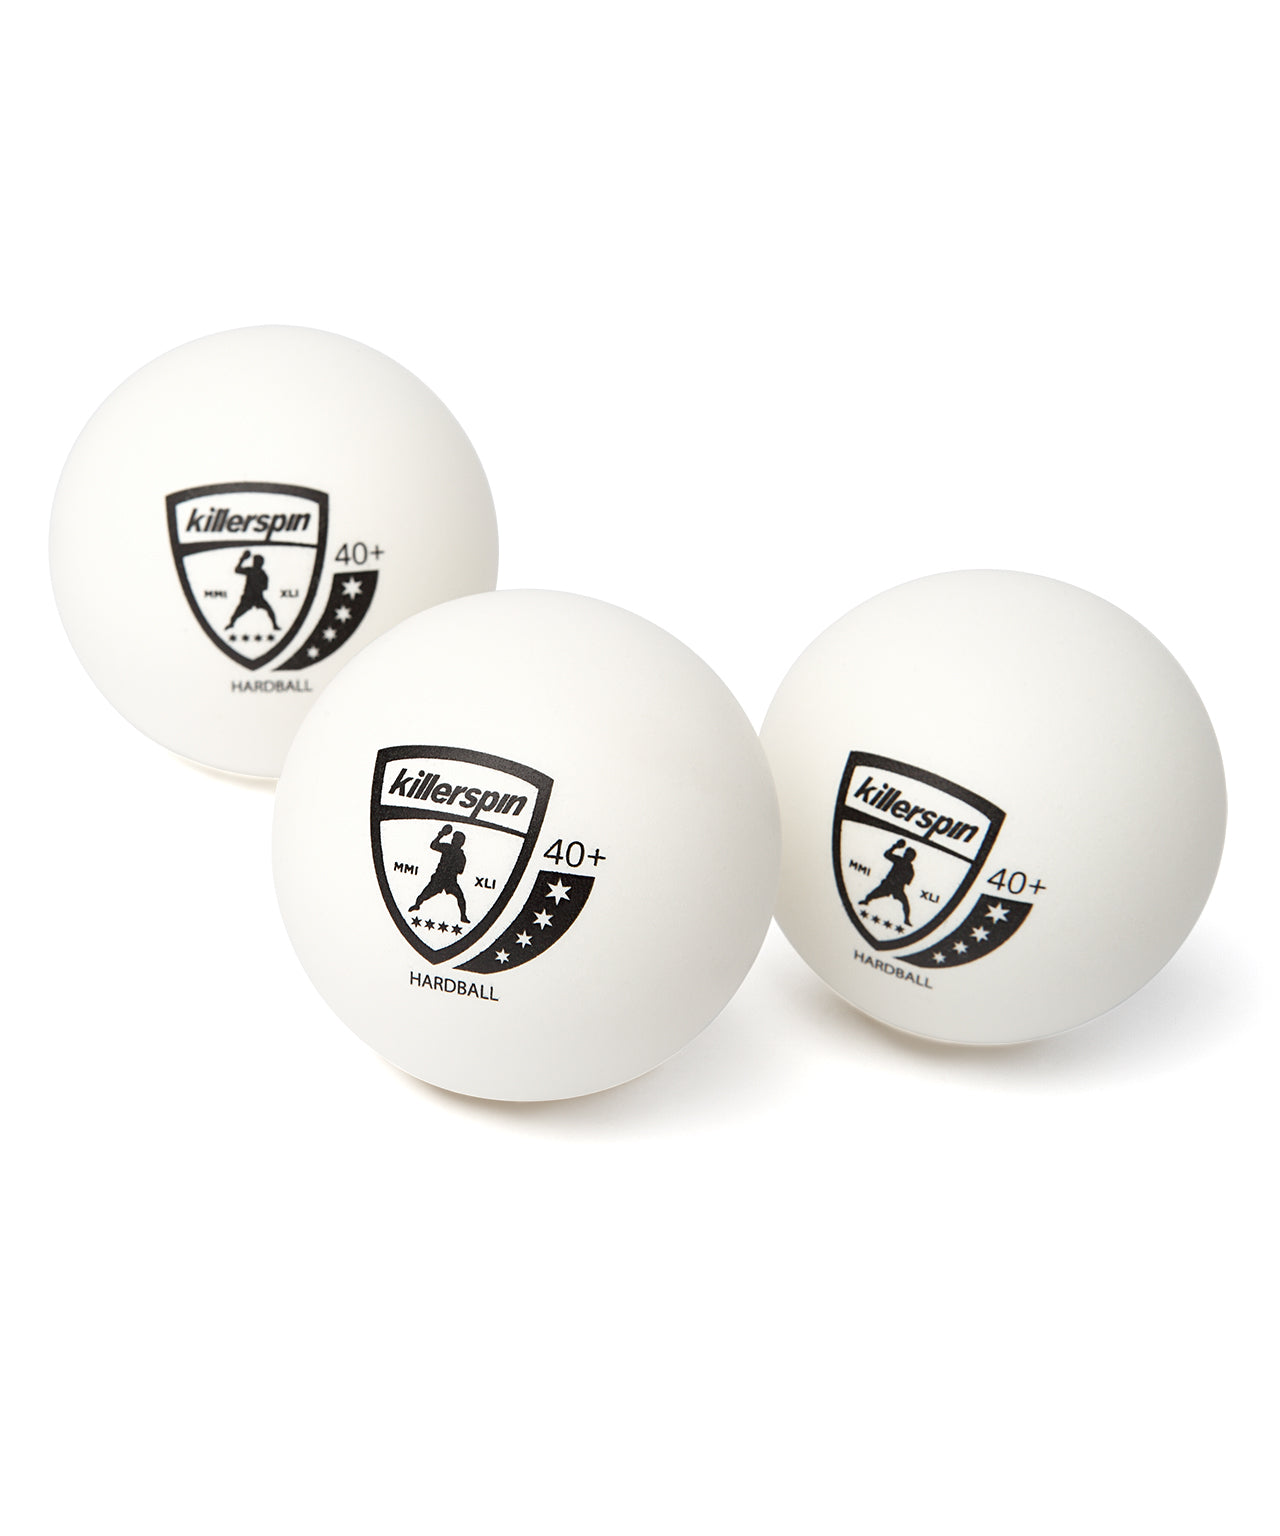 Killerspin 4 Star Hardball 40+ White Ping Pong Balls - Multiple Balls